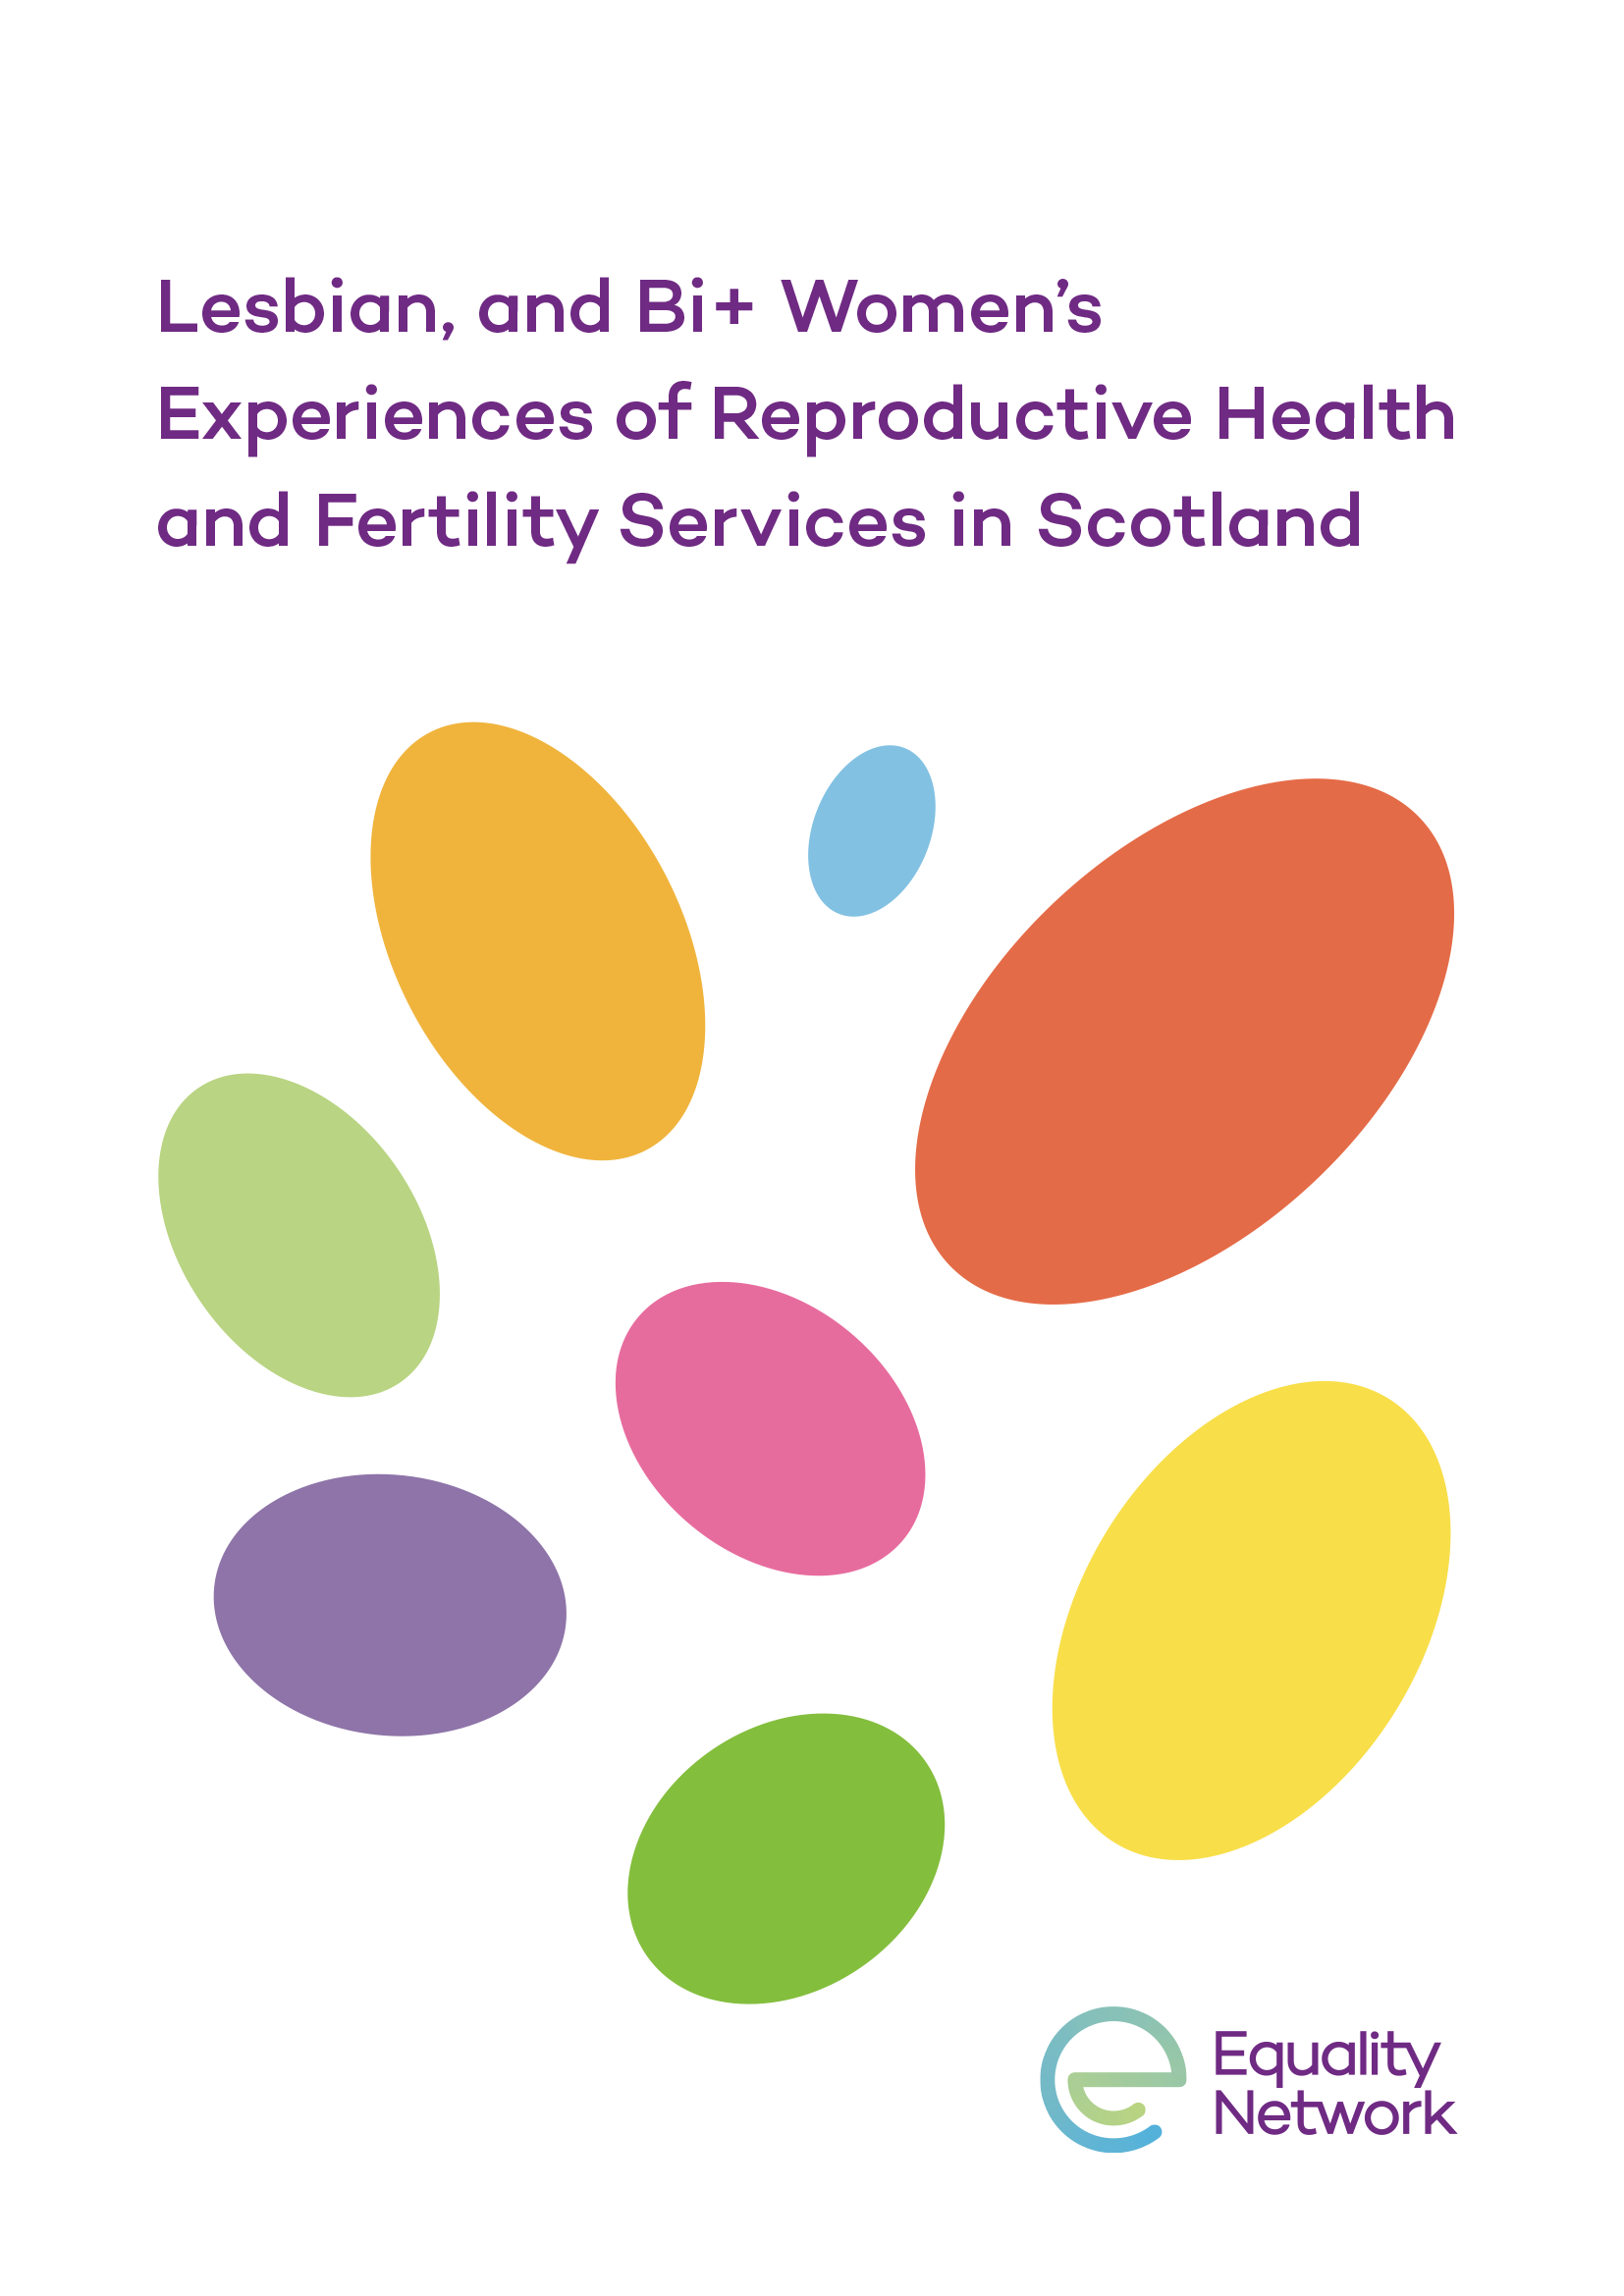 Lesbian, and Bi+ Women's Experiences of Reproductive Health and Fertility Services in Scotland